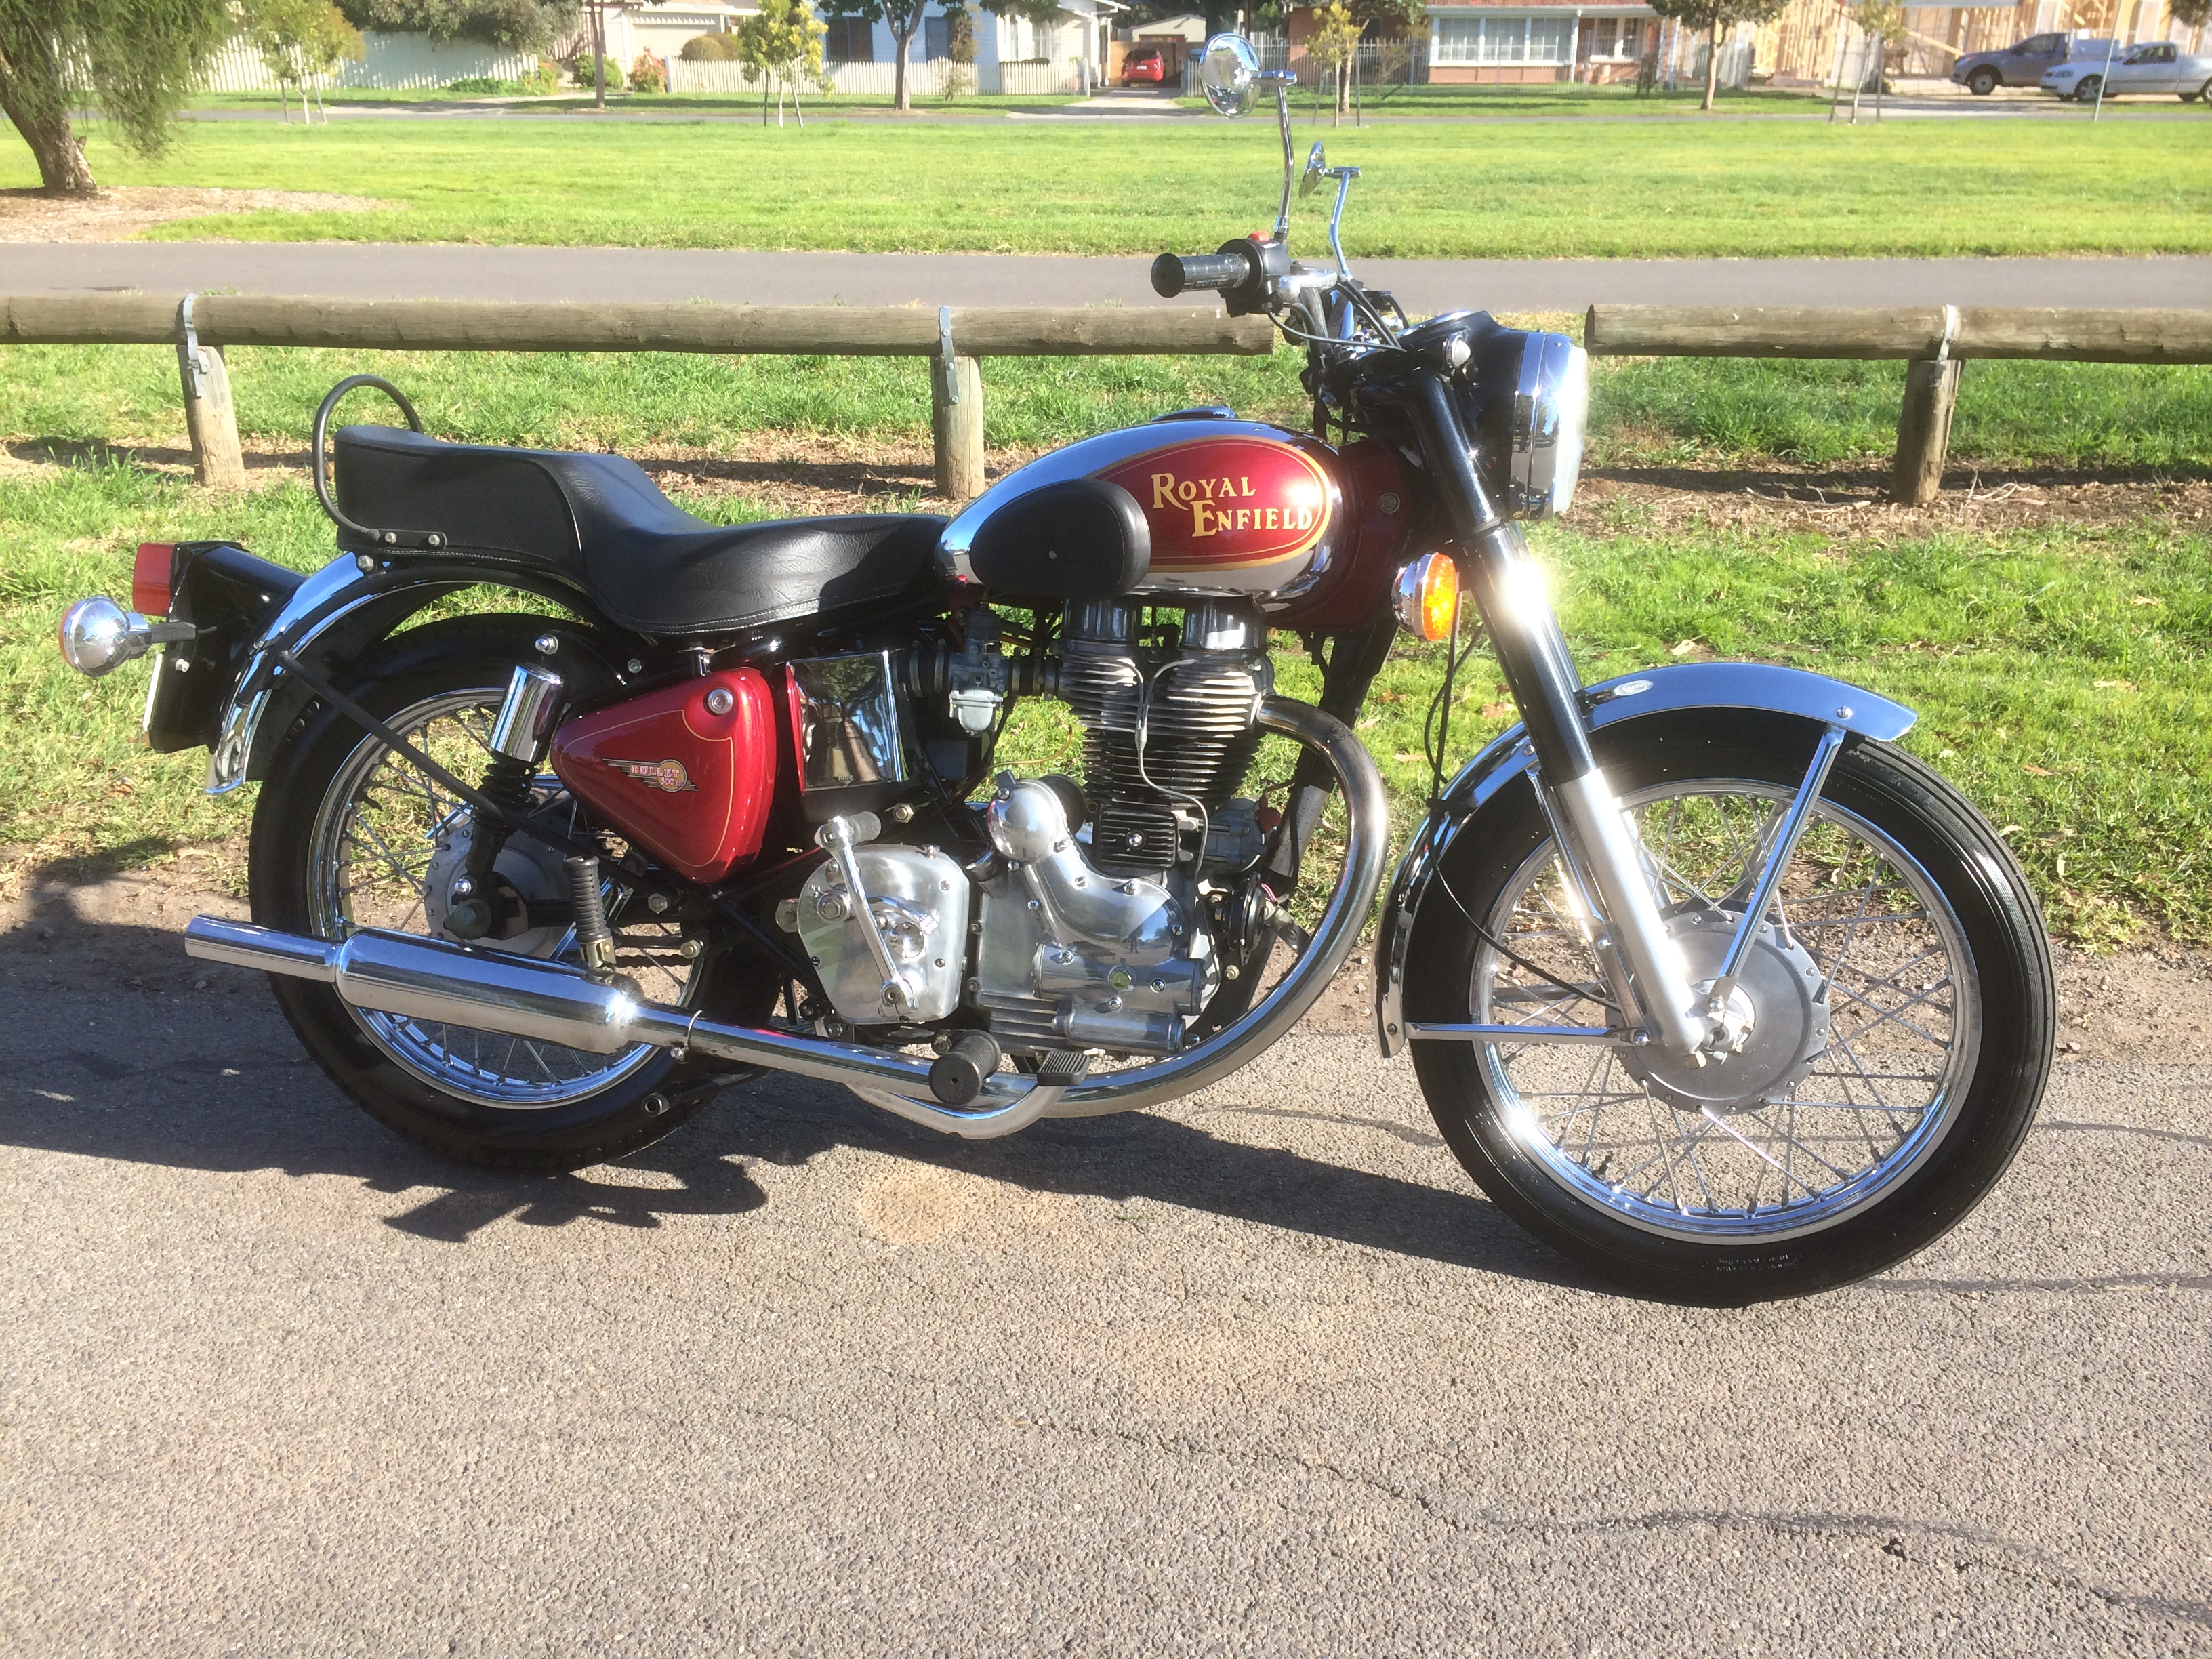 Royal Enfield Bullet 500 Army 1992 images #123378